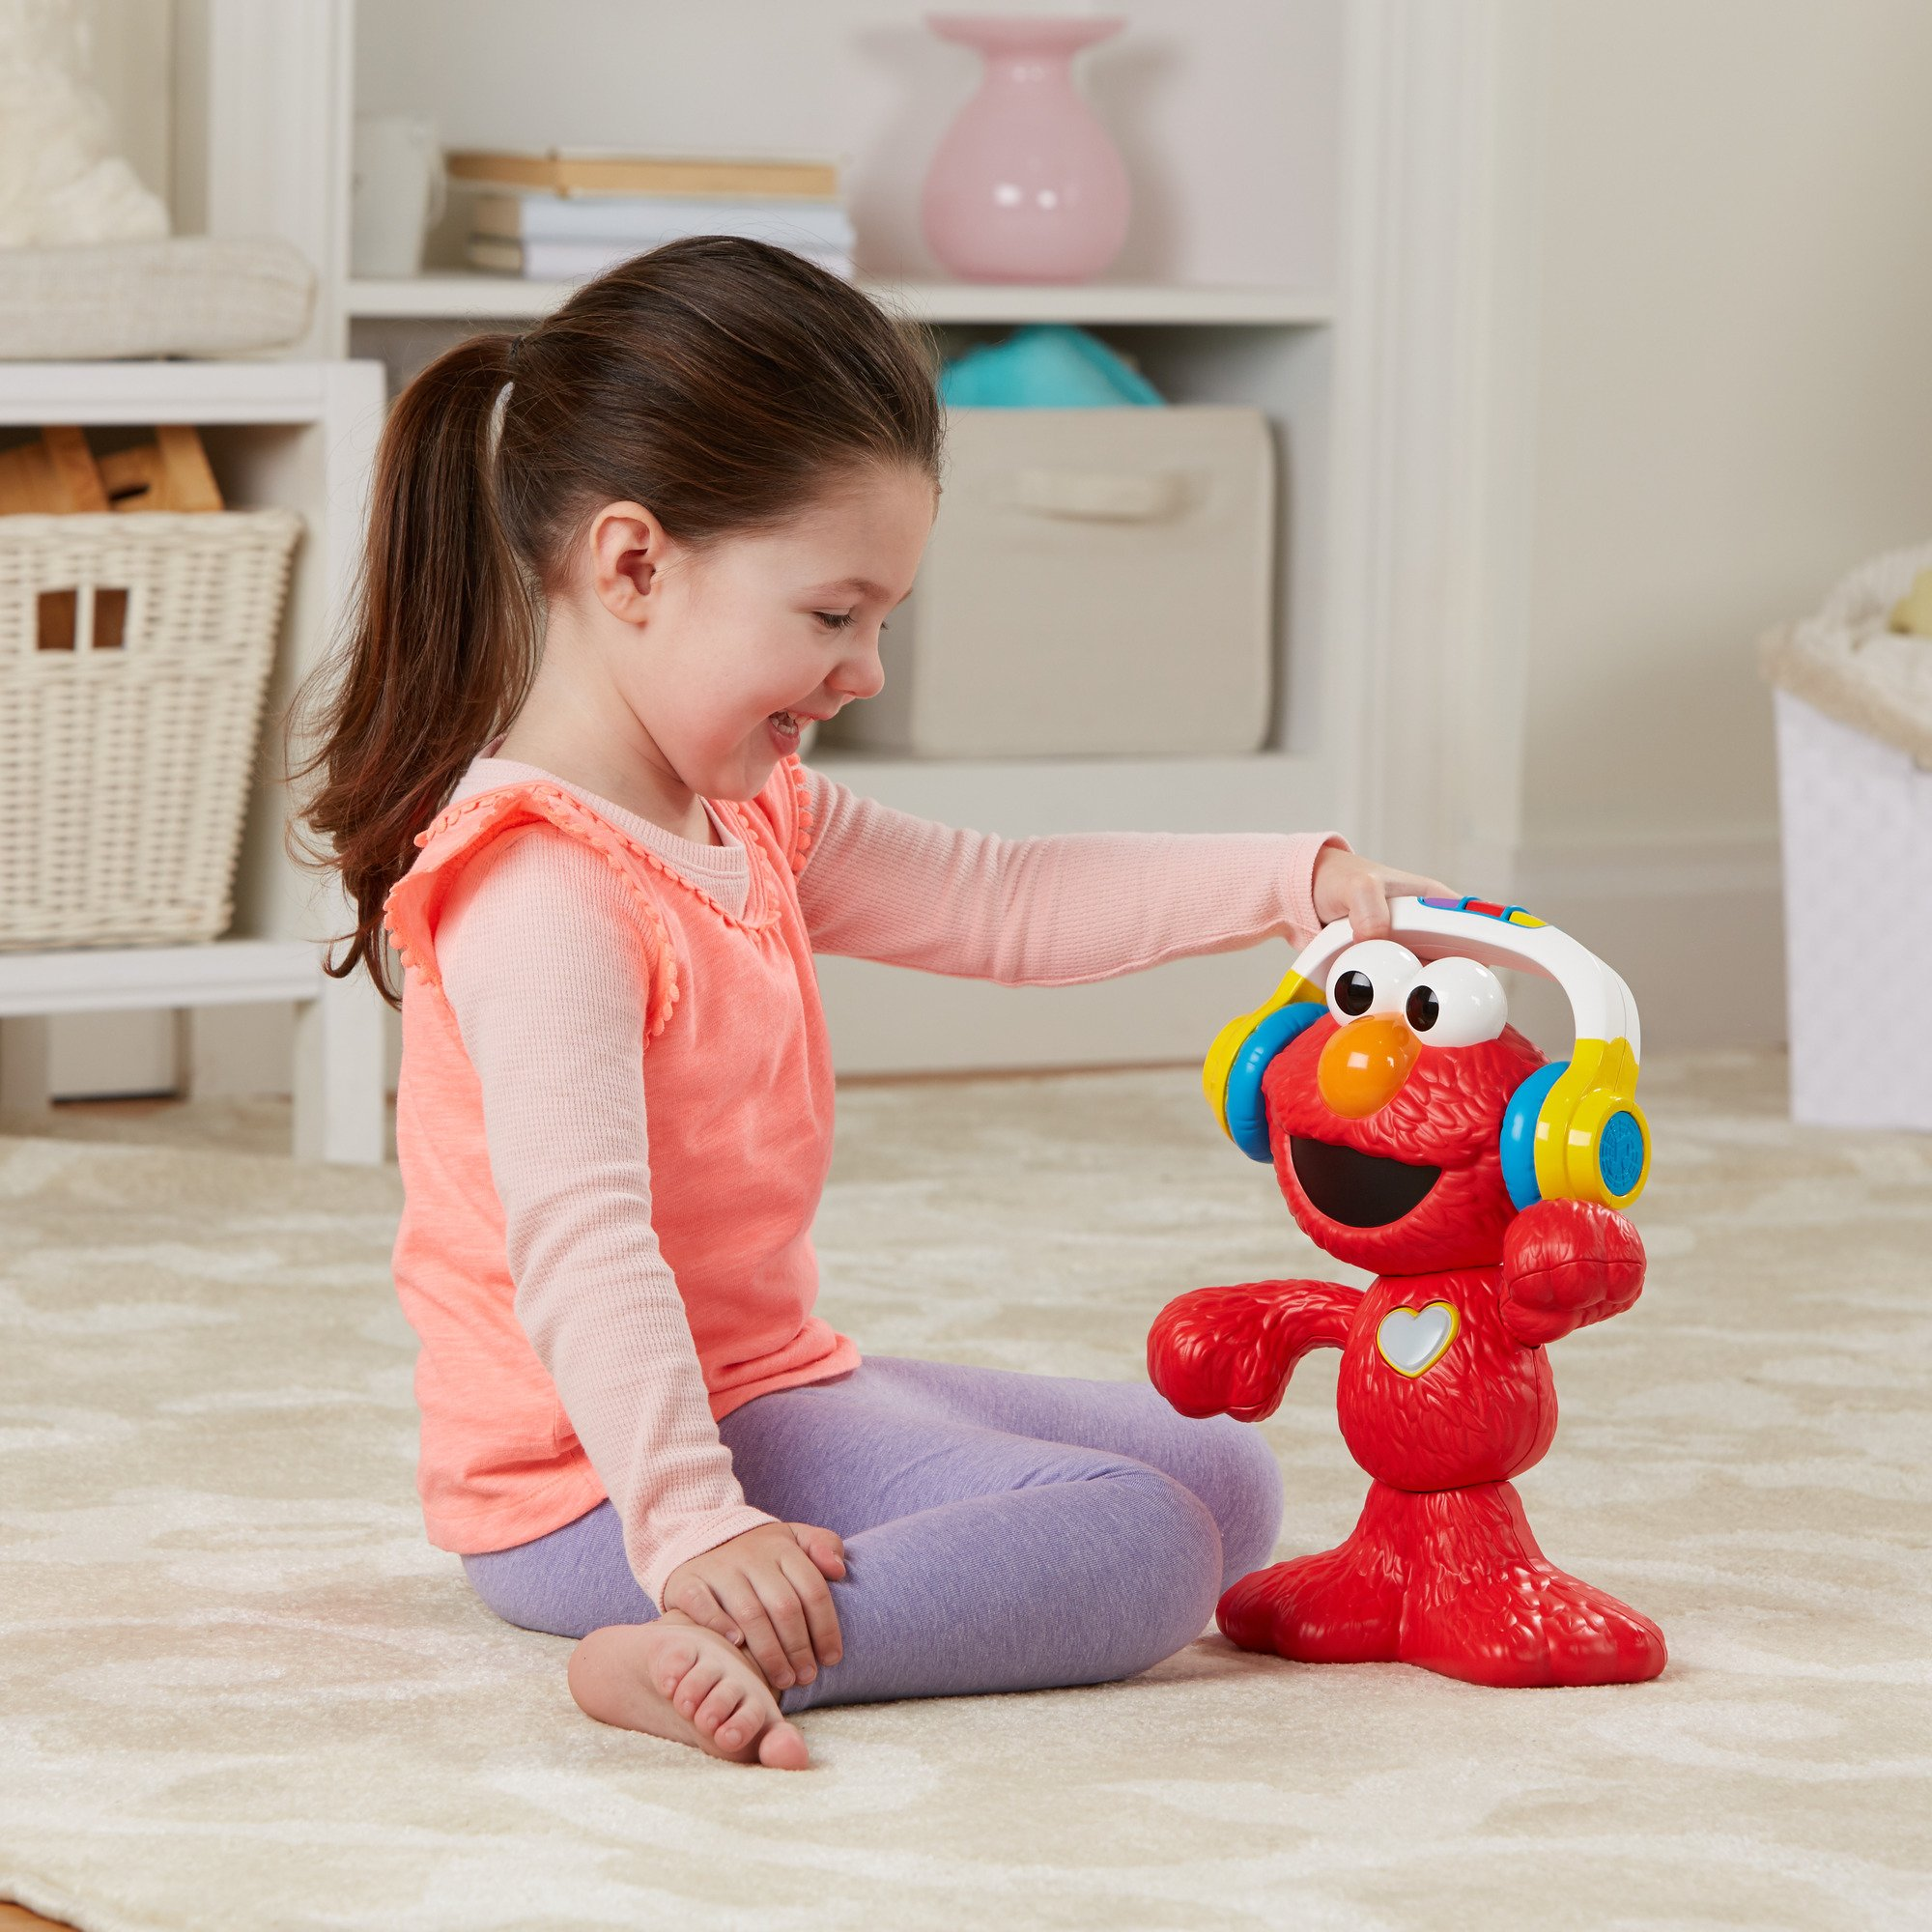 Sesame Street Let's Dance Elmo: 12-inch Elmo Toy that Sings and Dances, With 3 Musical Modes, Sesame Street Toy for Kids Ages 18 Months and Up by Sesame Street (Image #6)